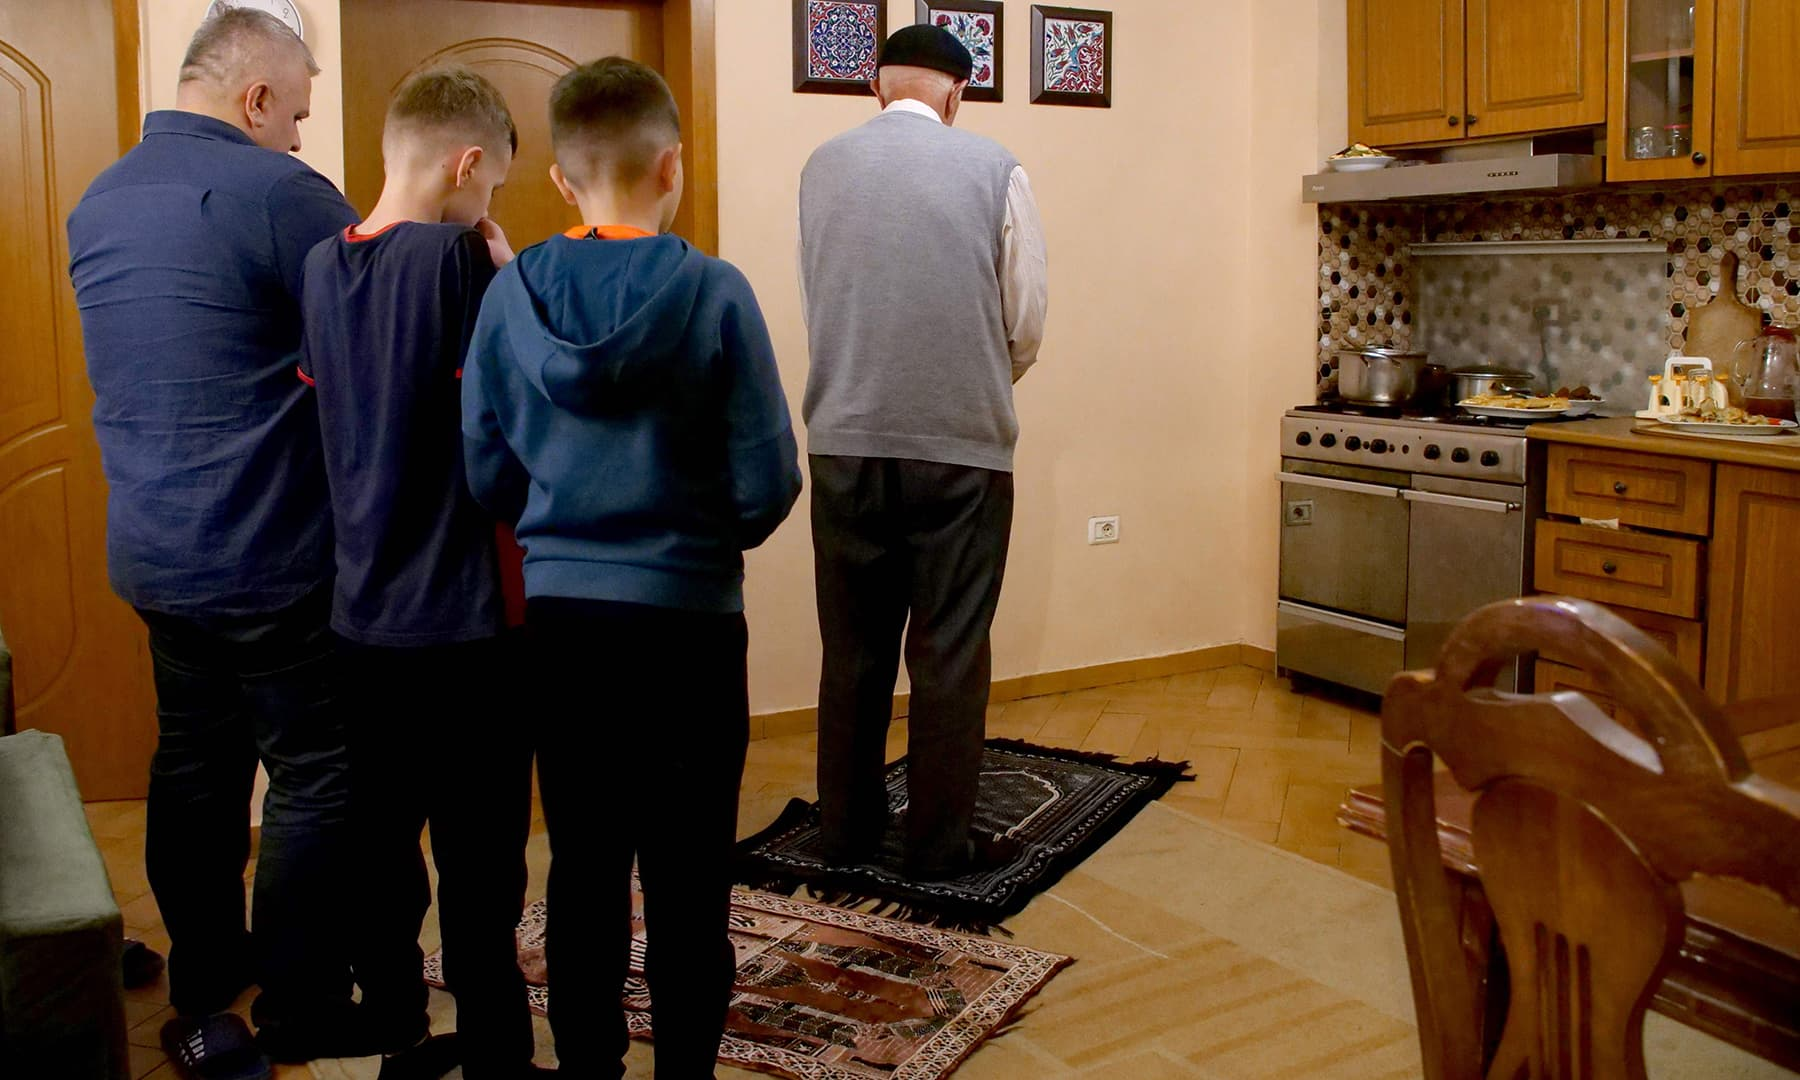 Grandfather Osman Hoxha (C), his son Agron Hoxha (L) and his grandchildren pray at their home prior the iftar during Ramazan in Tirana, Albania on April 24. — AFP